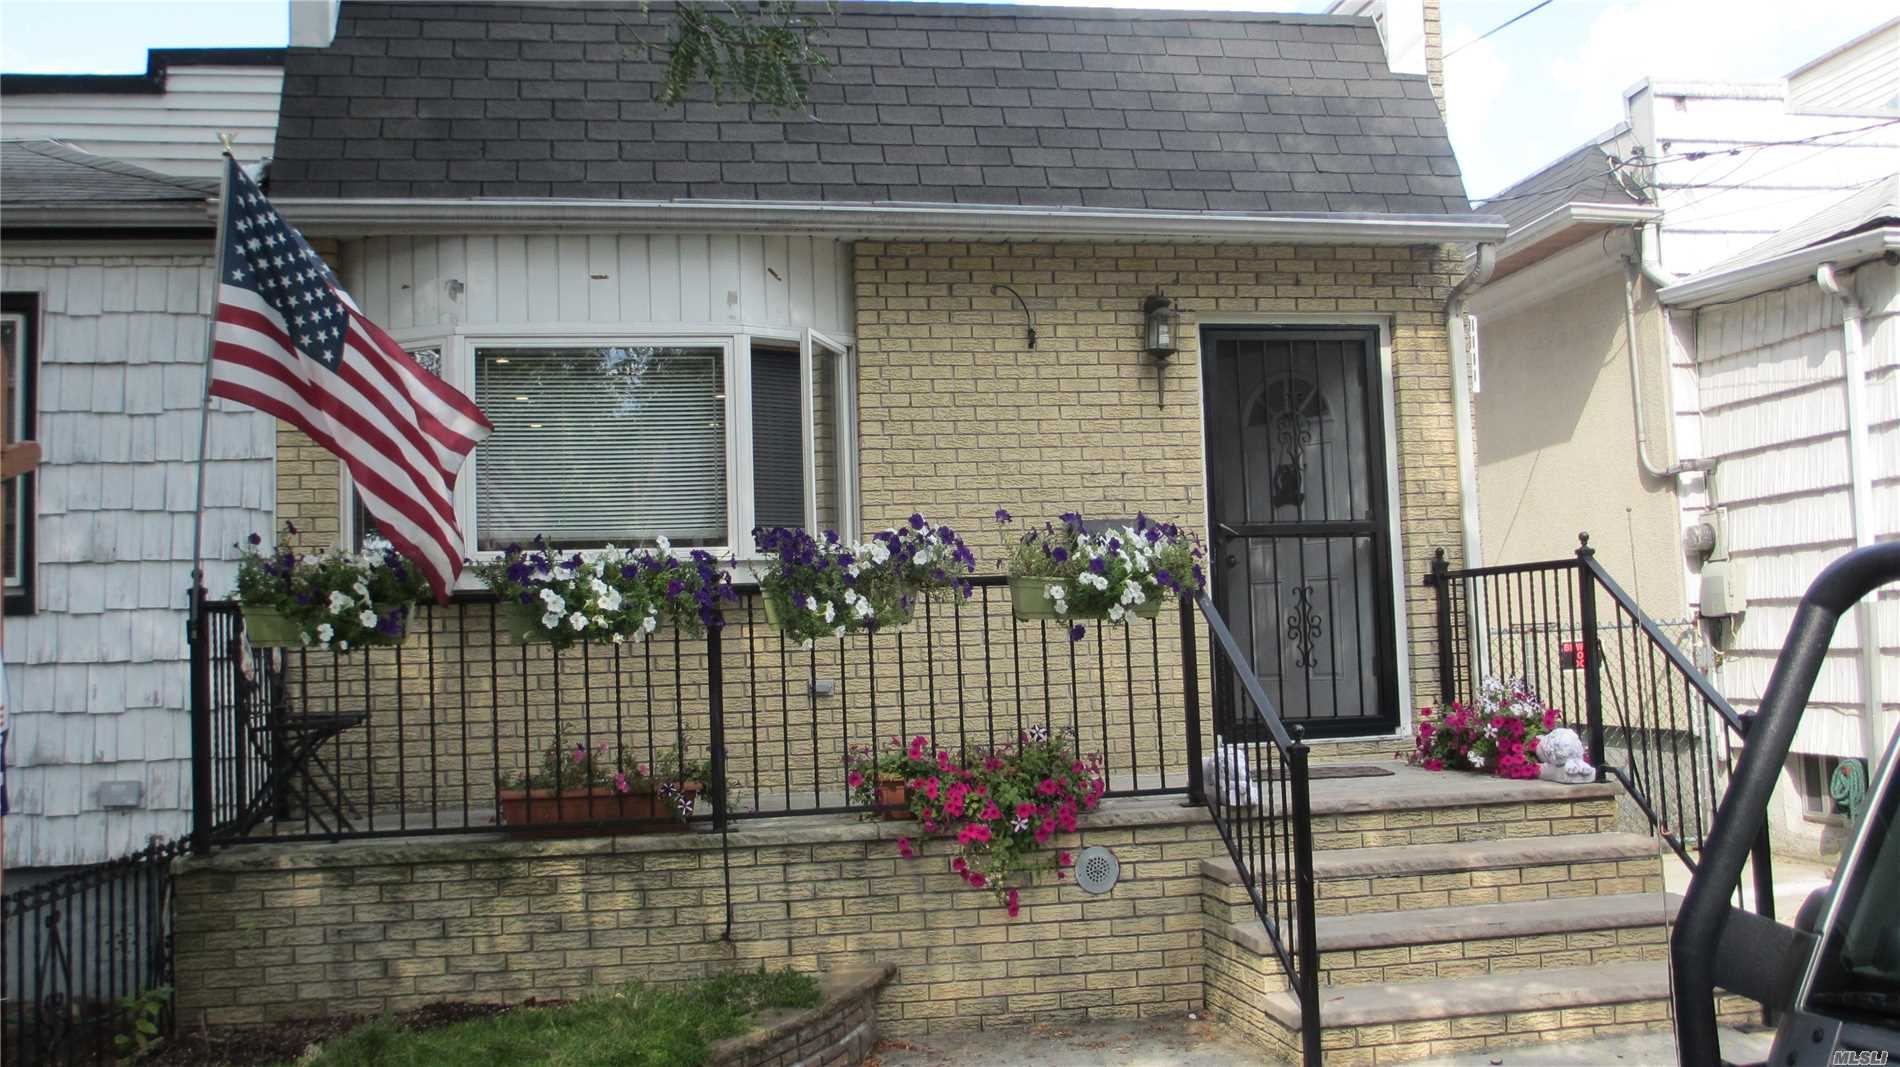 A Spacious House For Rent In Ozone Park. It Features A Beautiful Kitchen, Large Living Room With Skylight, Hardwood Floors Throughout , Ample Closet Space, Upgraded Lighting, A Fully Finished Basement And Charming Backyard. The House Is In A Great Neighborhood, Close To Buses, Stores And Schools.